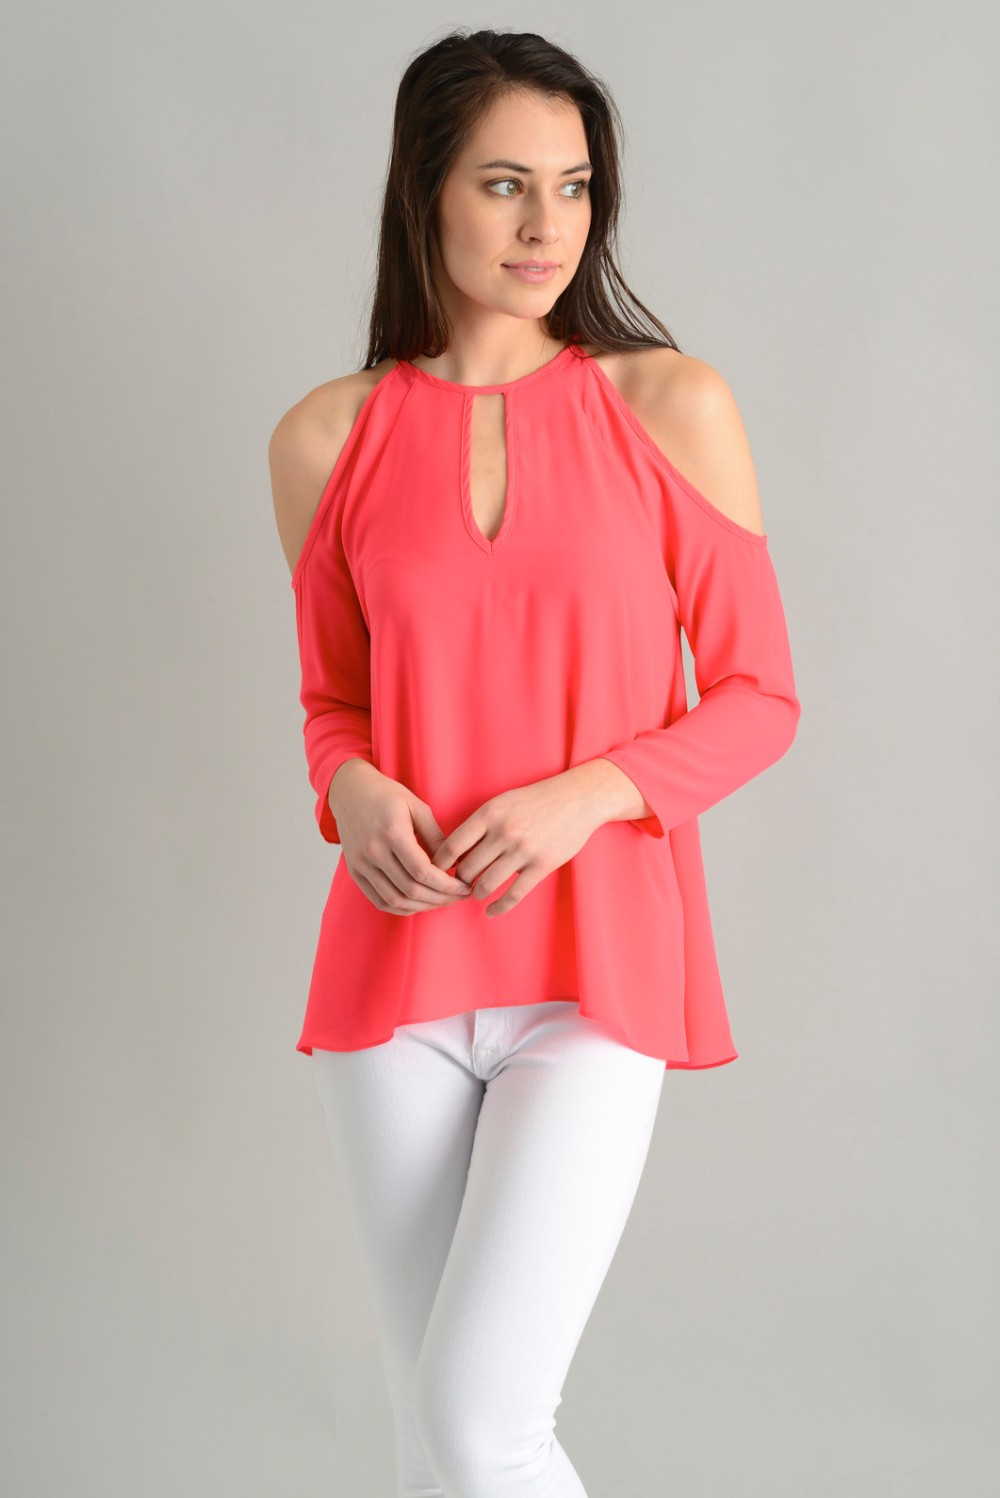 Are you looking for Womens Blouses casual style online? makeshop-mdrcky9h.ga offers the latest high quality cute blouses for women at great prices. Free shipping world wide.